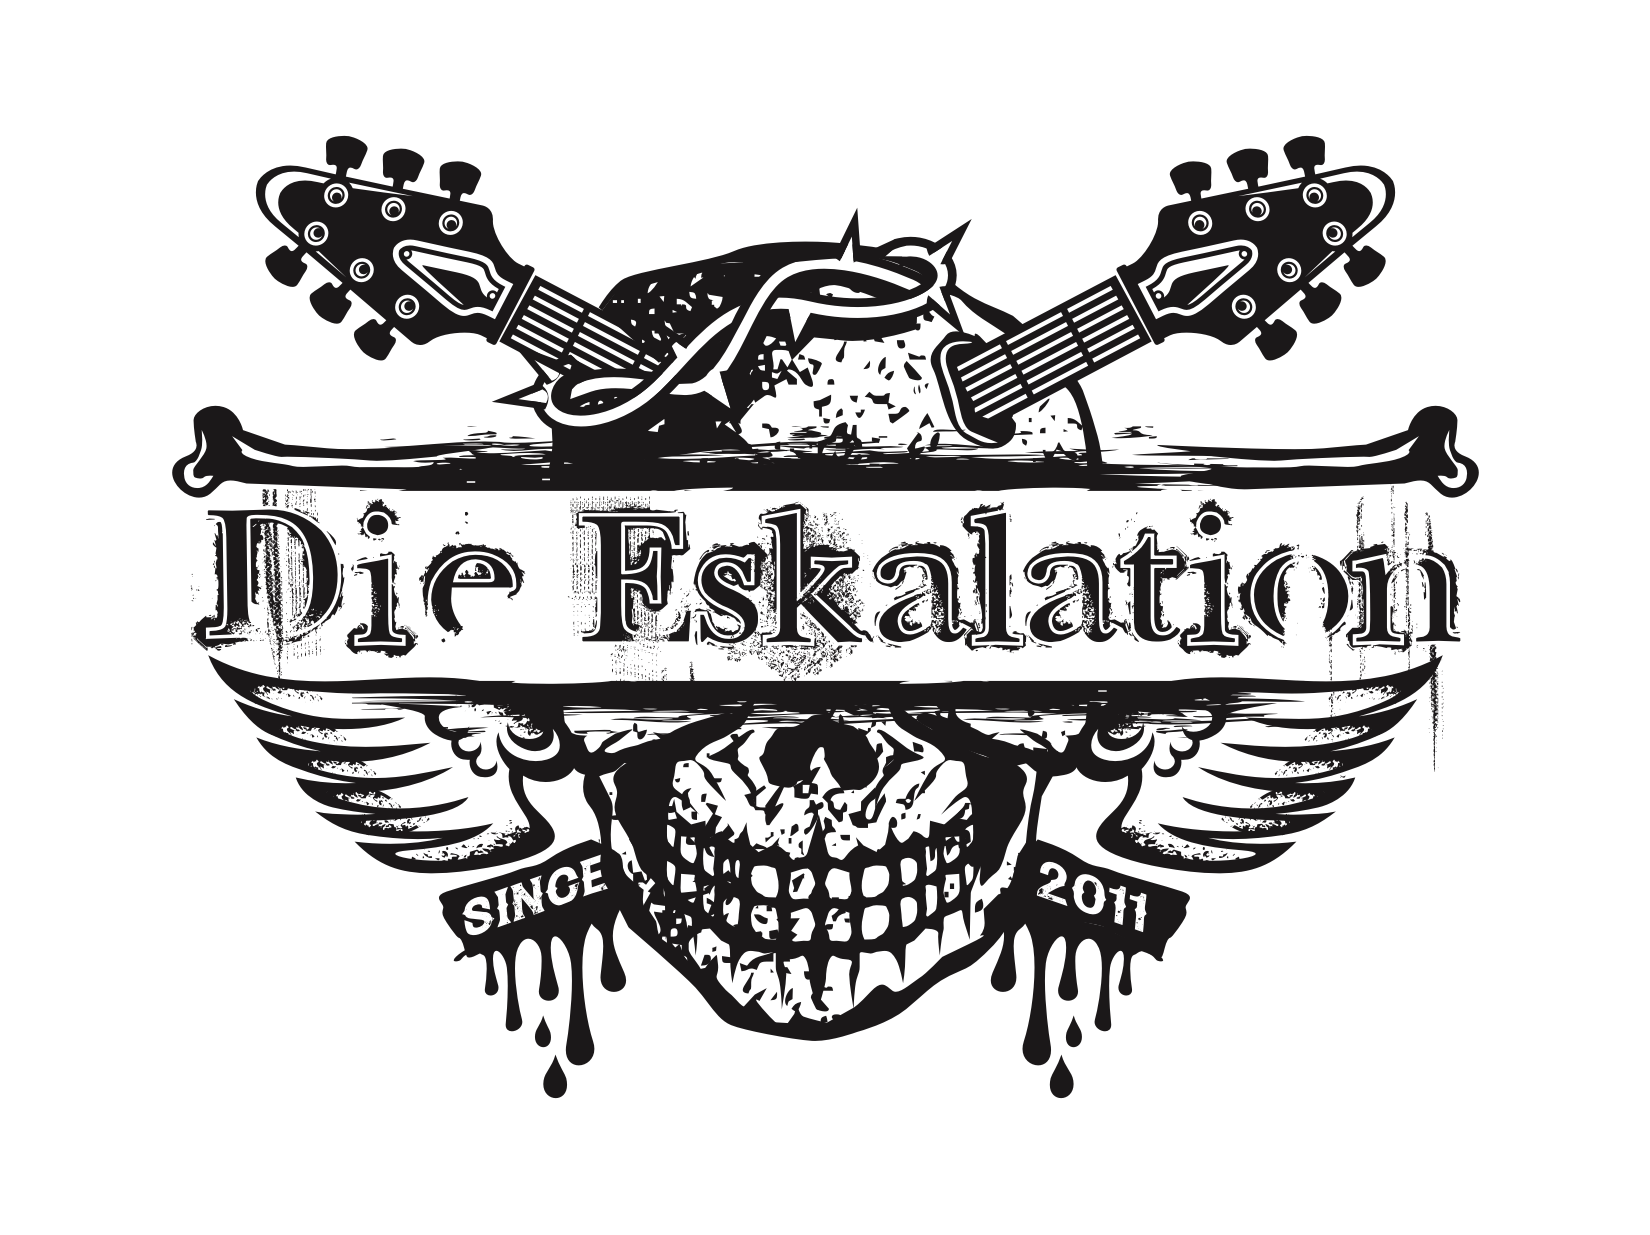 01 Die Eskalation - version A - full logo - transparent background